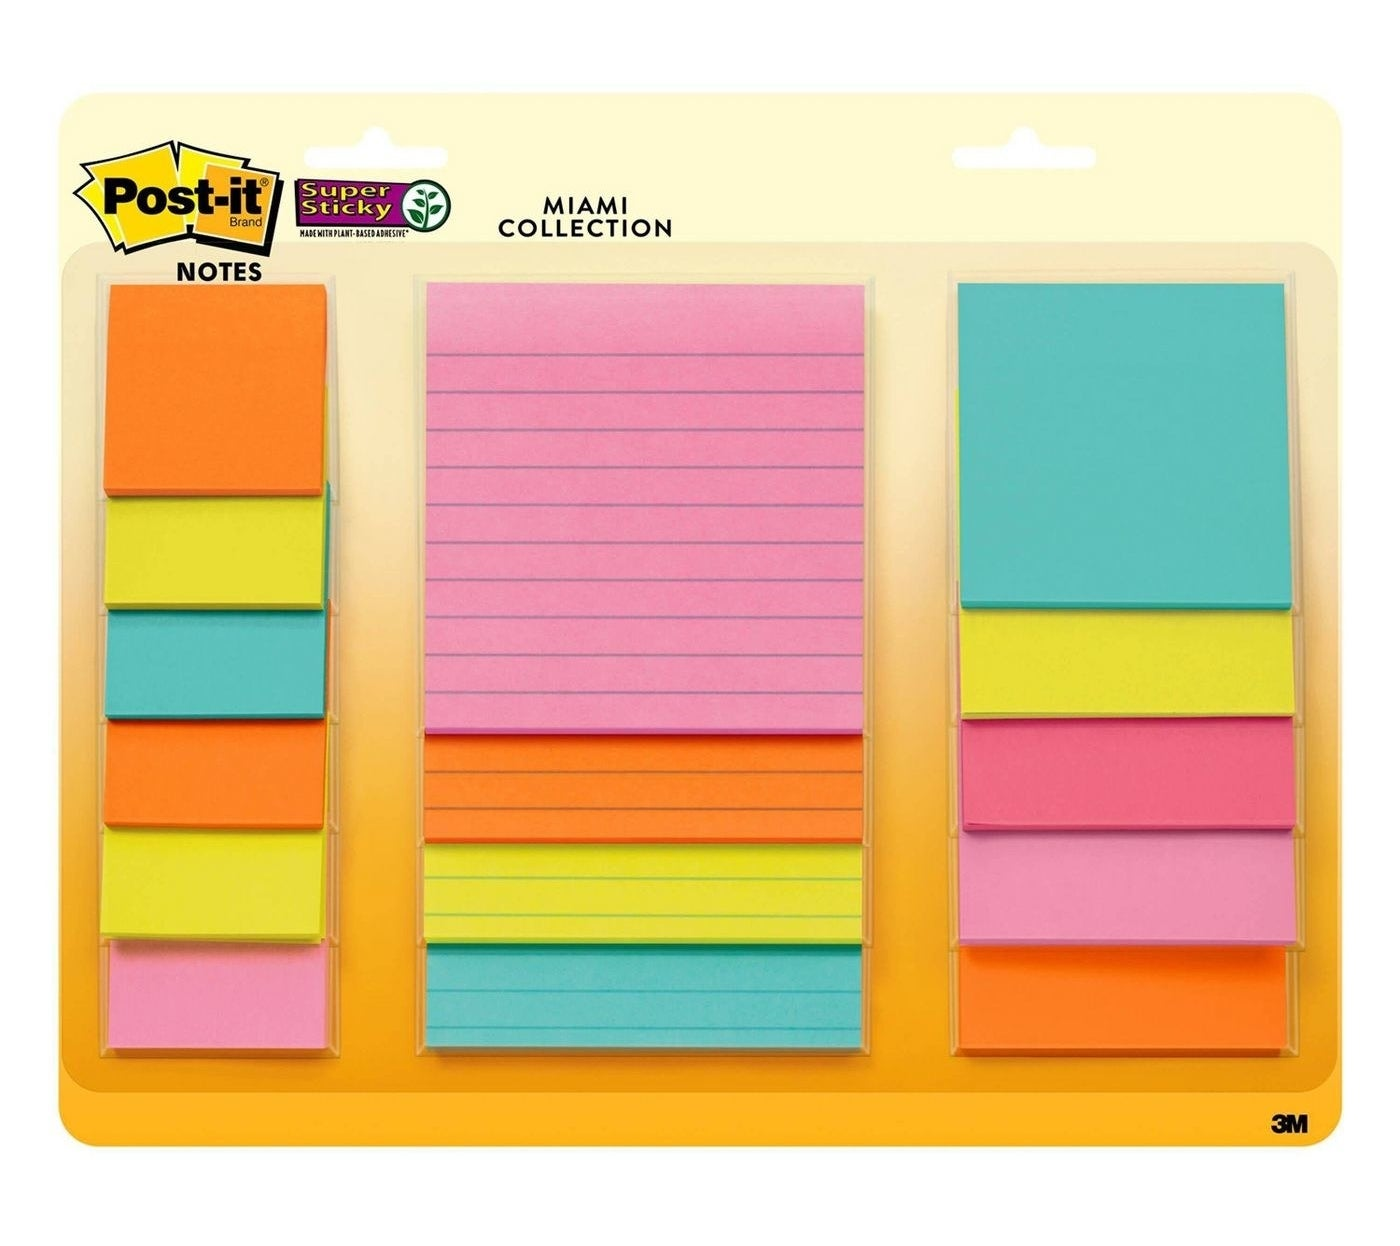 the Miami Collection Post-it 15 count Super Sticky Notes Pack